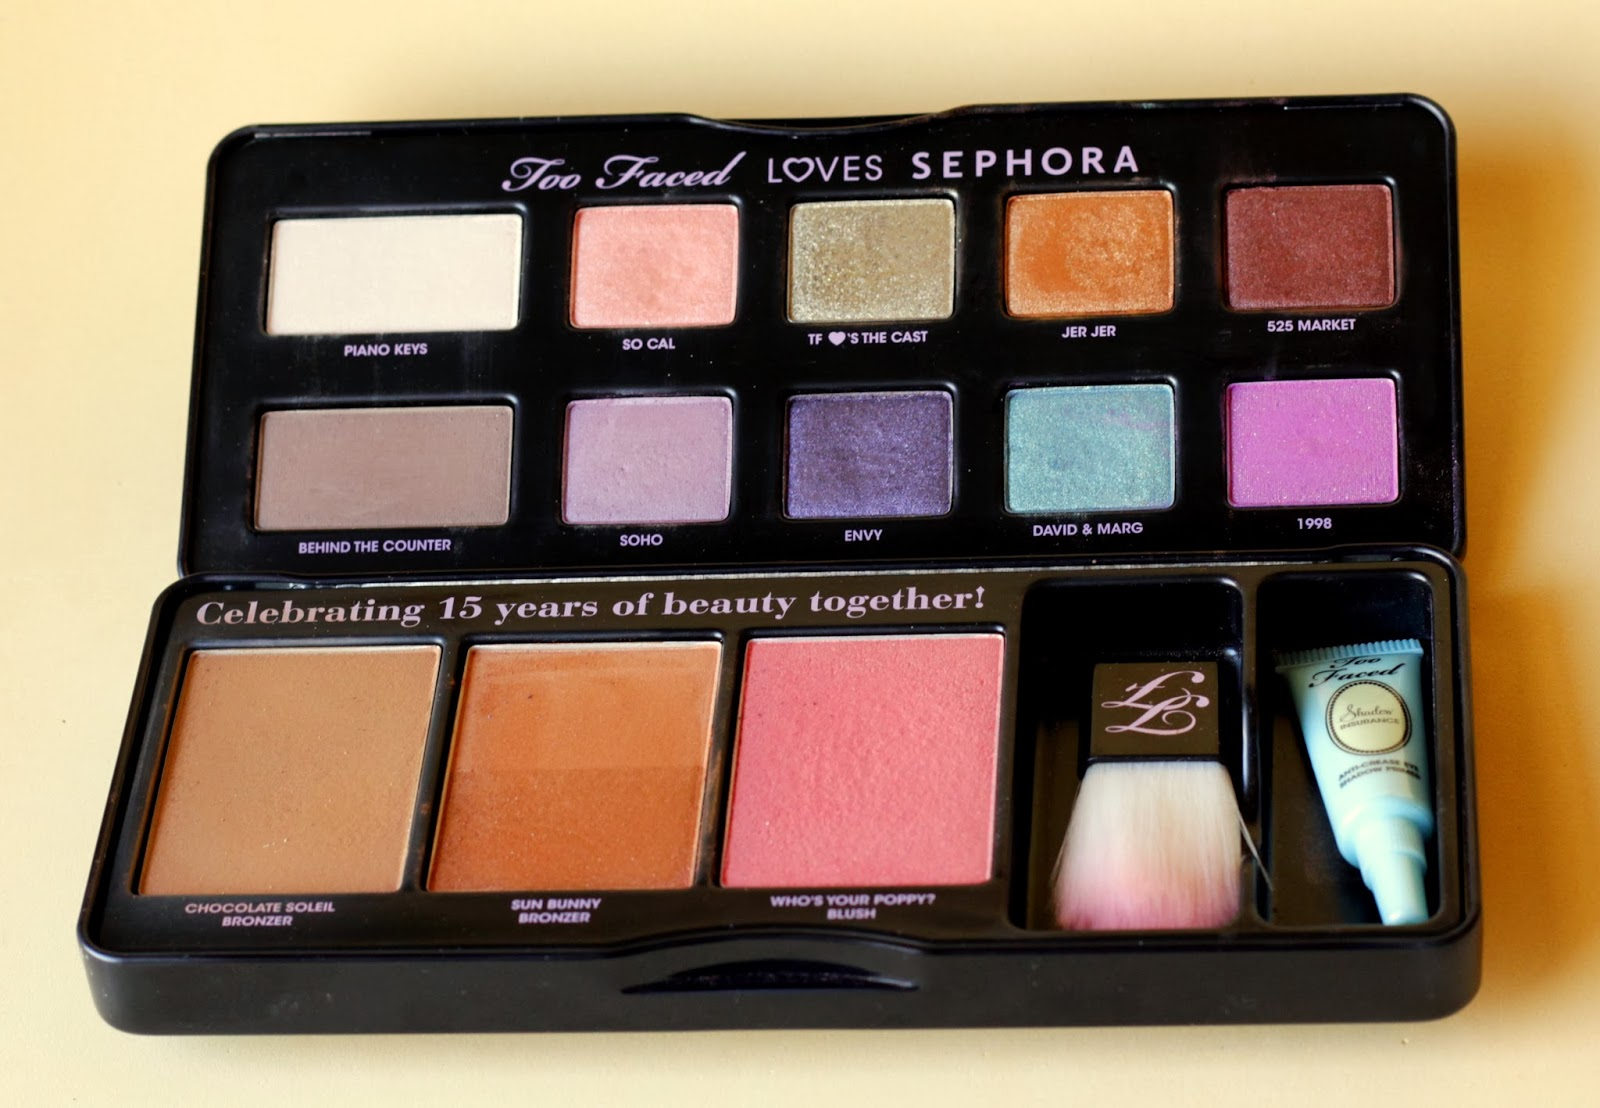 too faced loves sephora